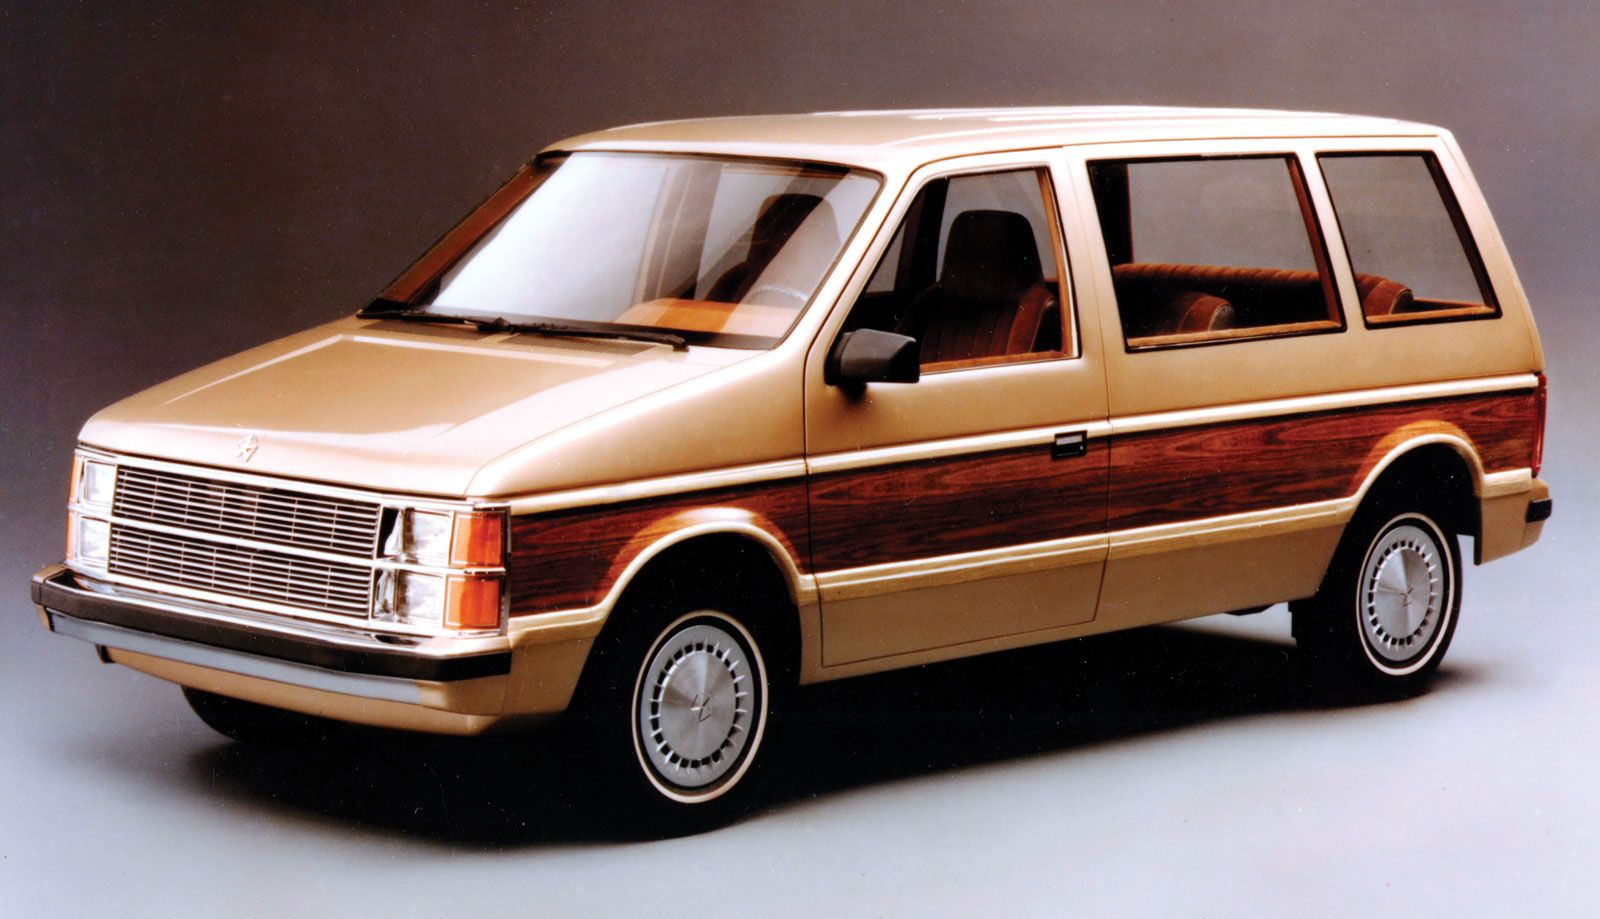 In 1983 Dodge Debuted The Dodge Caravan Mini Van Chrysler